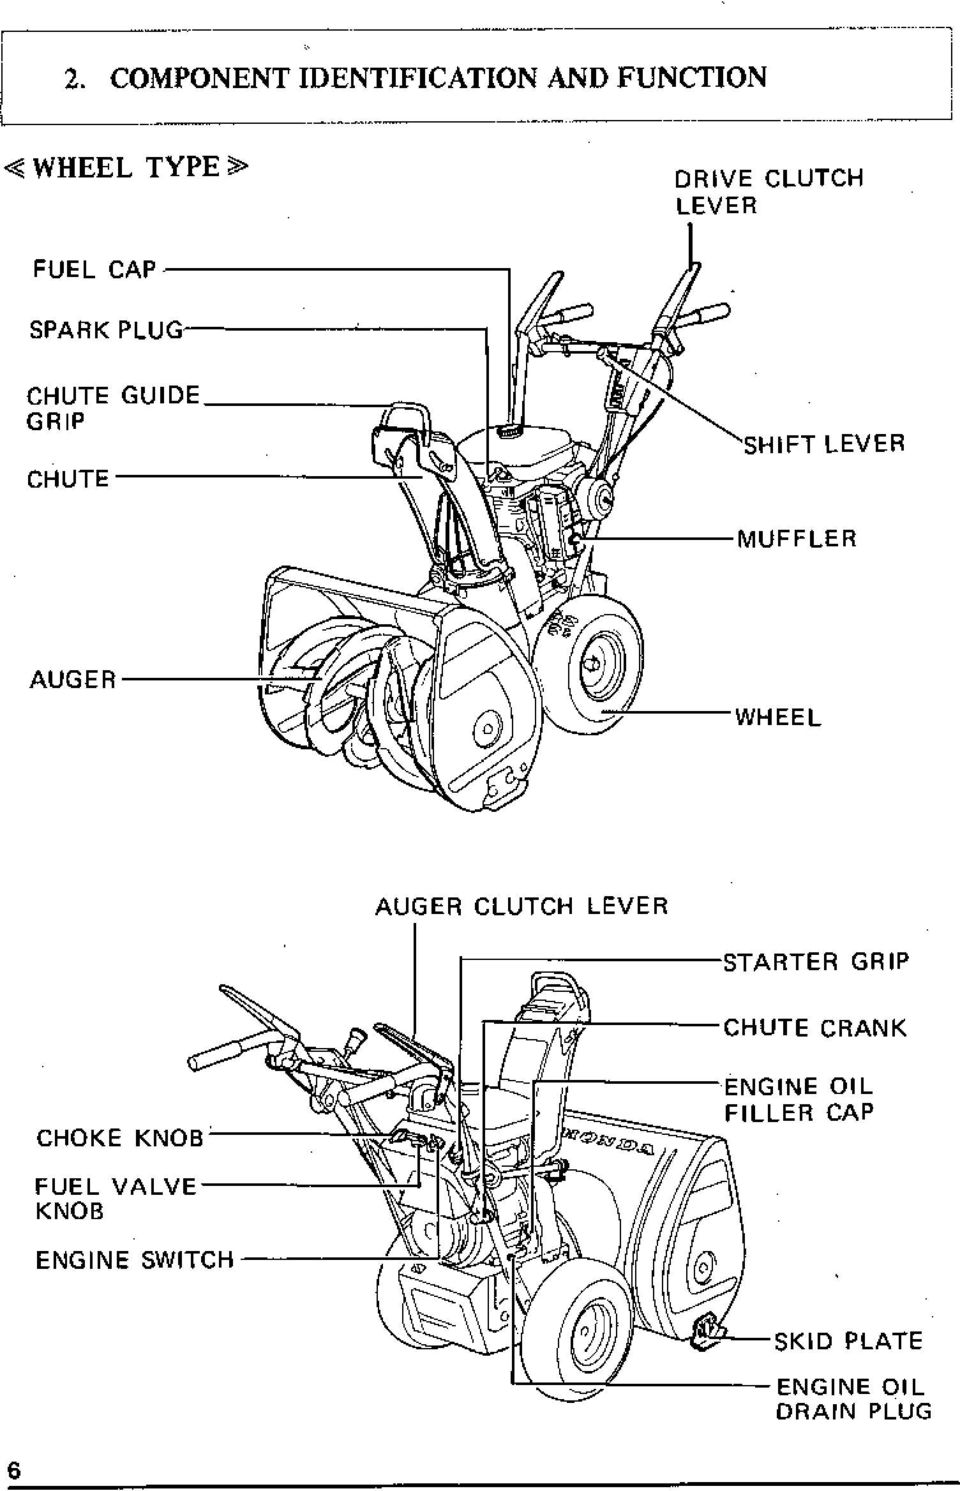 Diagram Of Honda Snow Blower Parts Hs55 Wa Snow Blower Jpn Vin Hs55